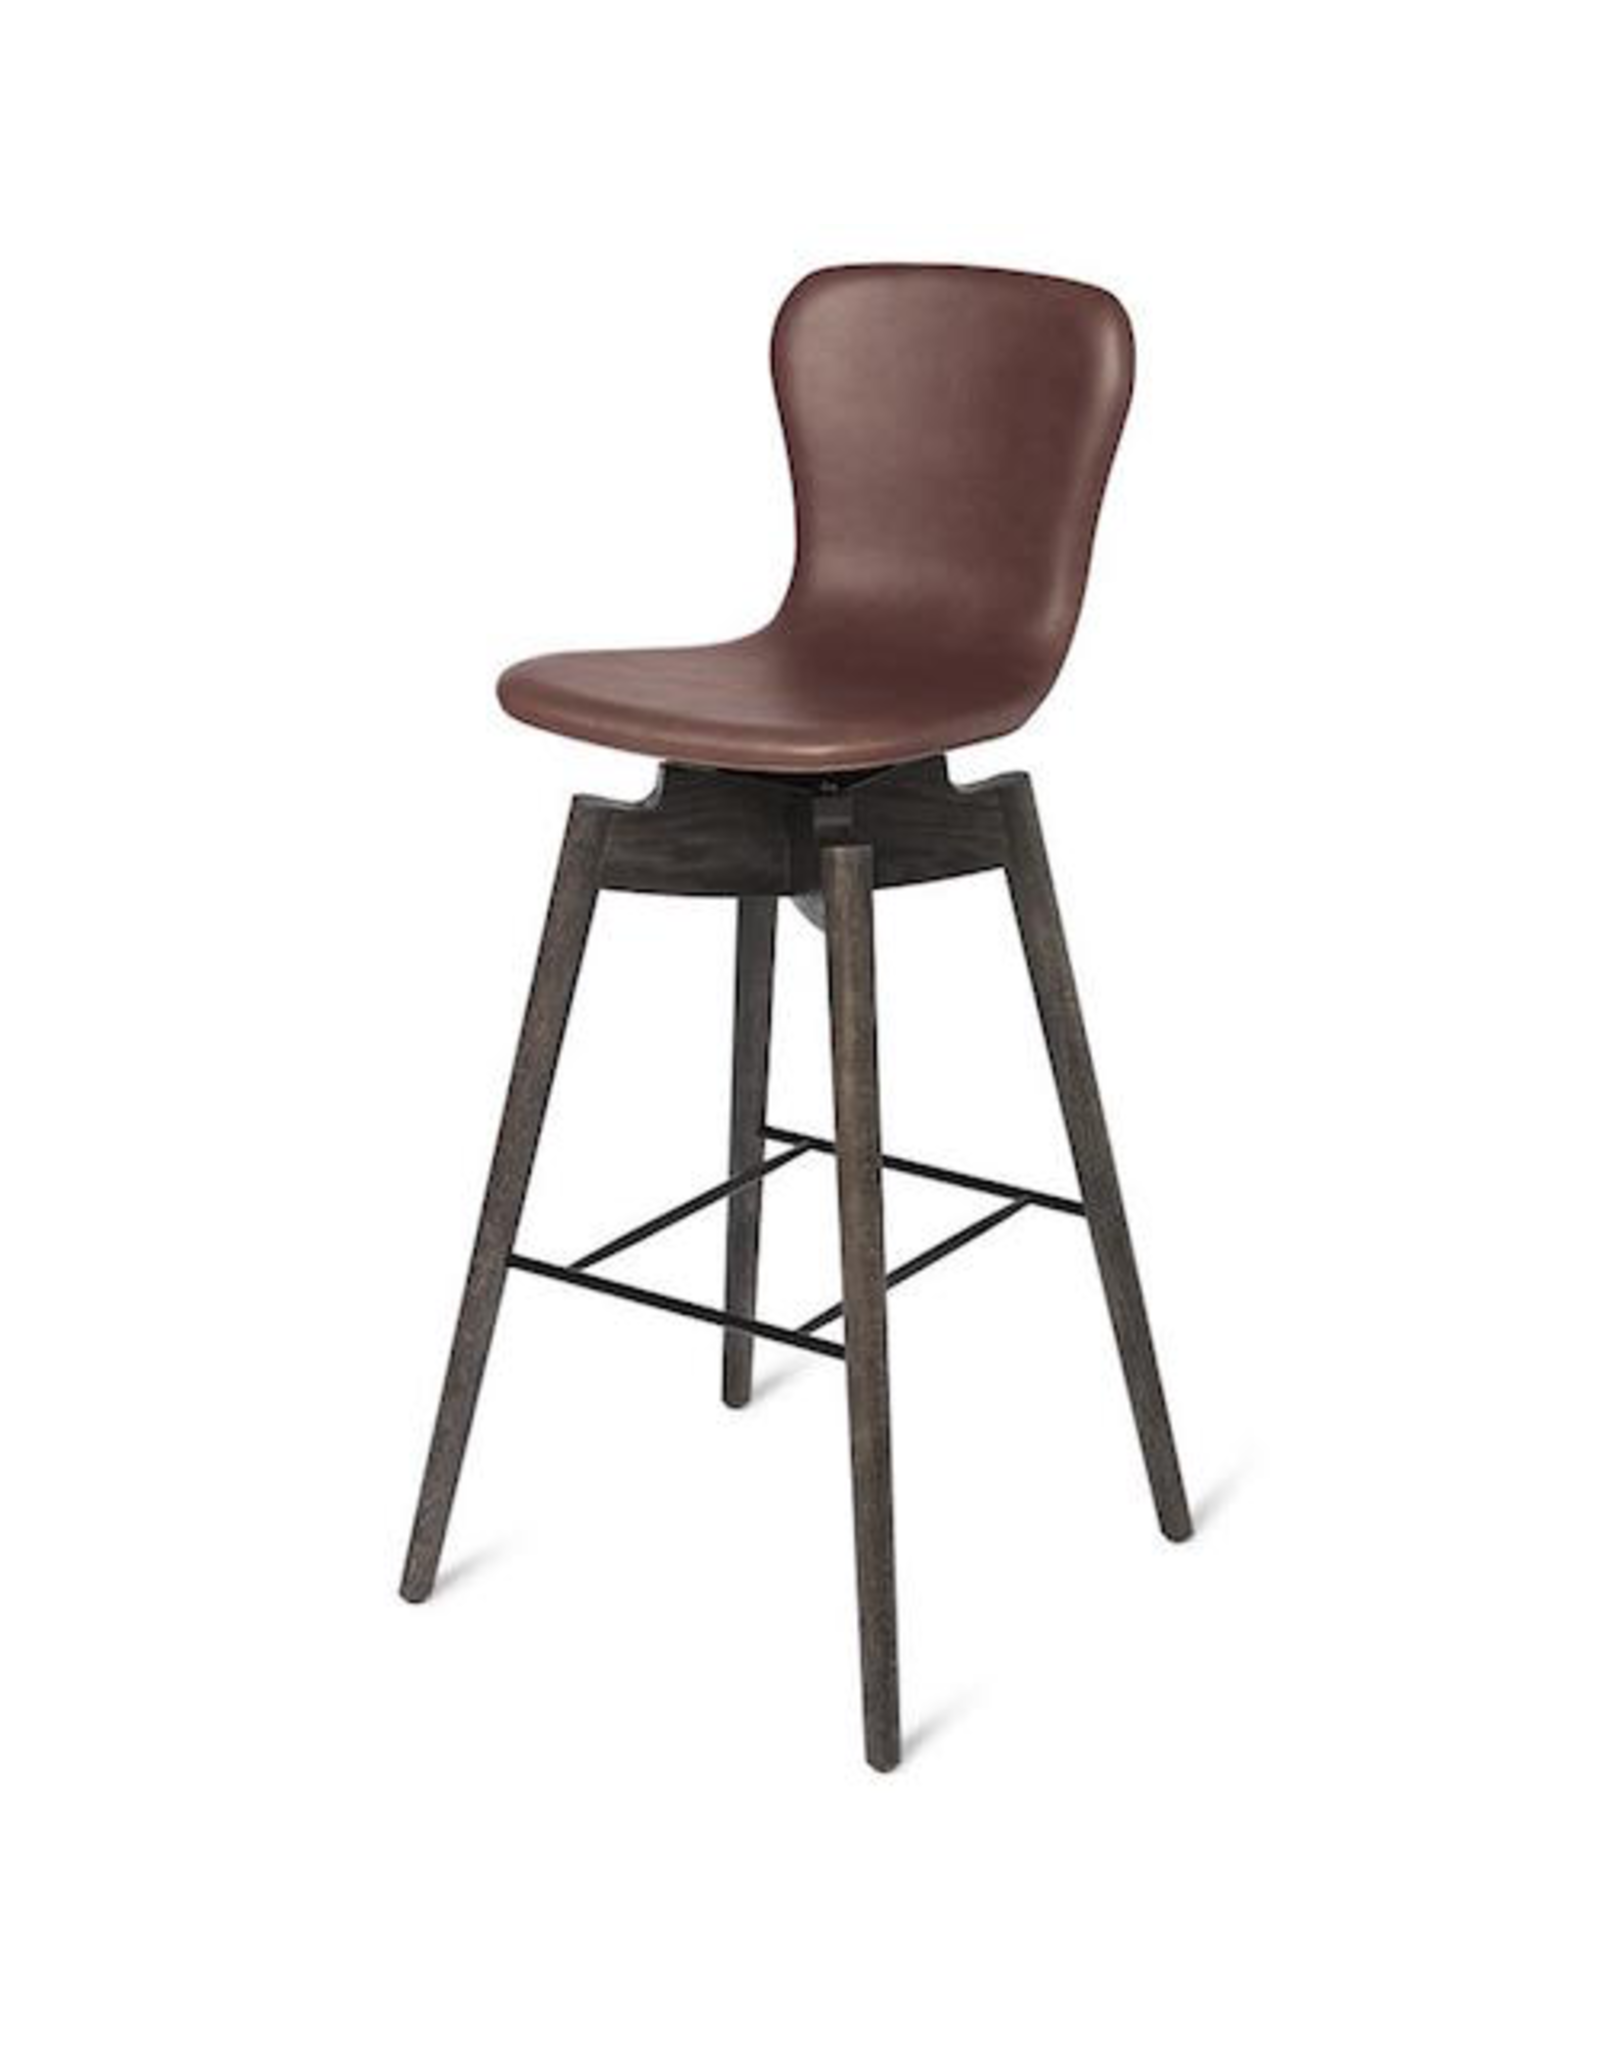 MATER SHELL BARSTOOL IN ULTRA COGNAC LEATHER